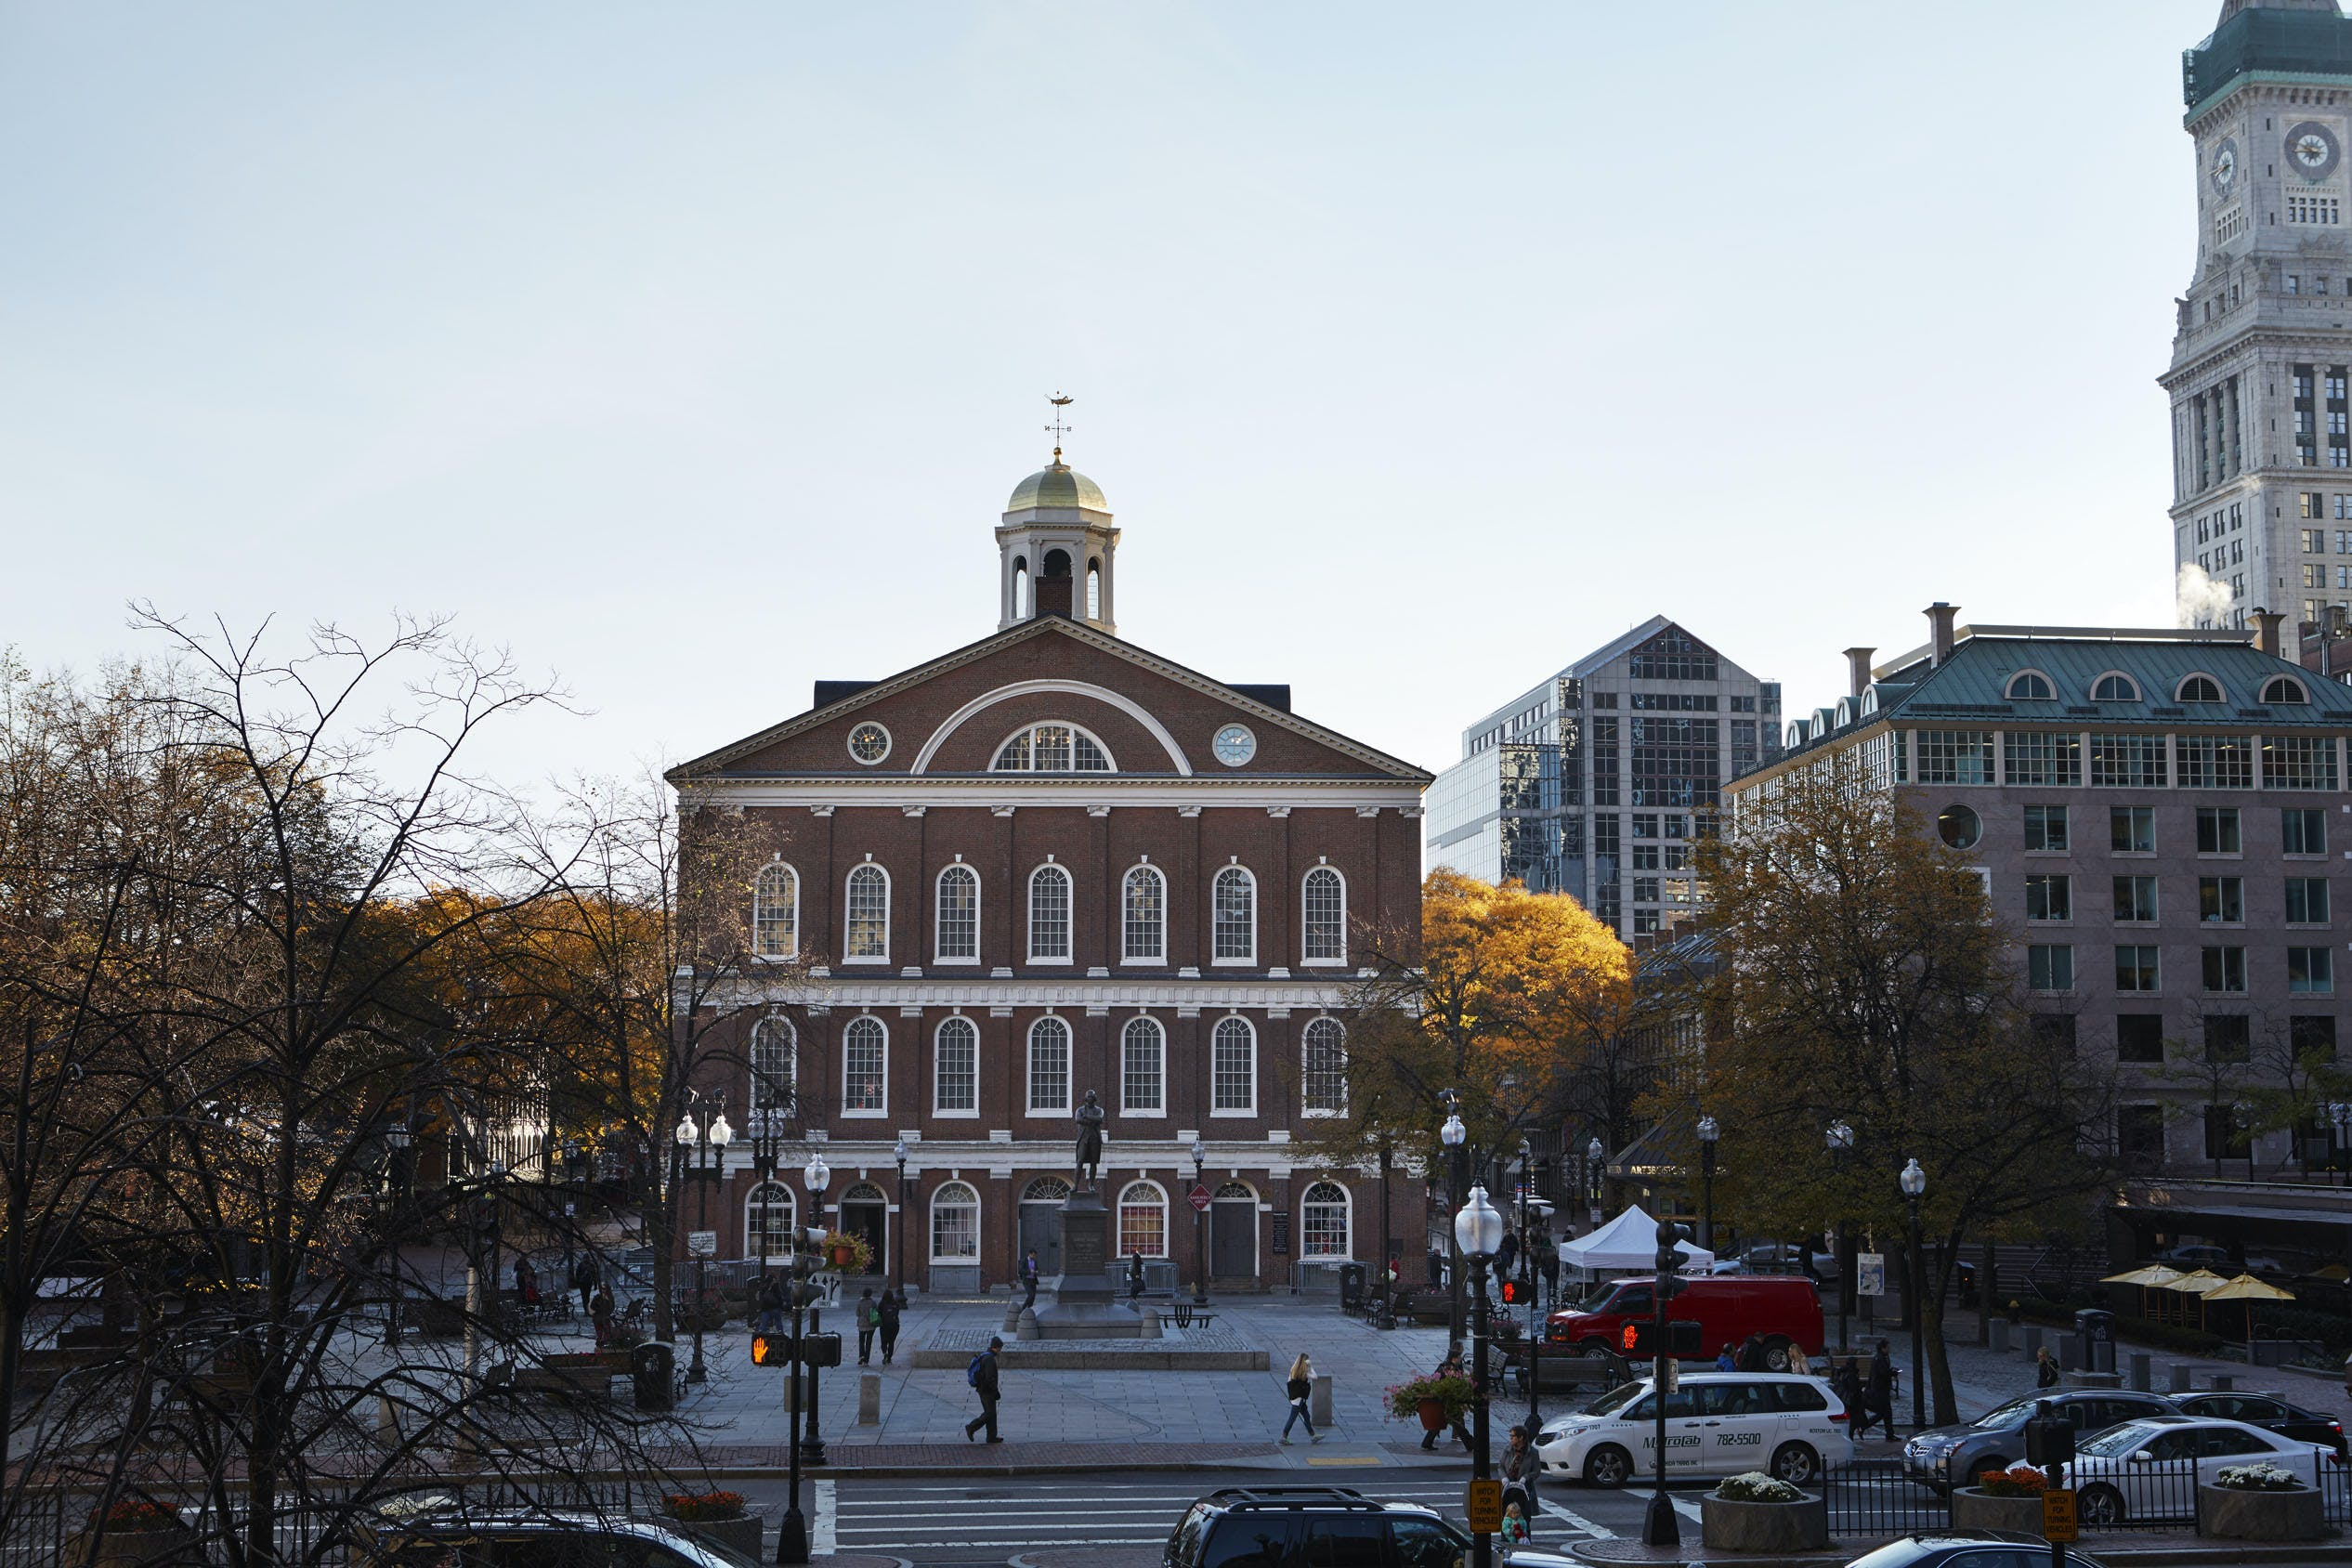 Faneuil Hall Marketplace, Boston, MA